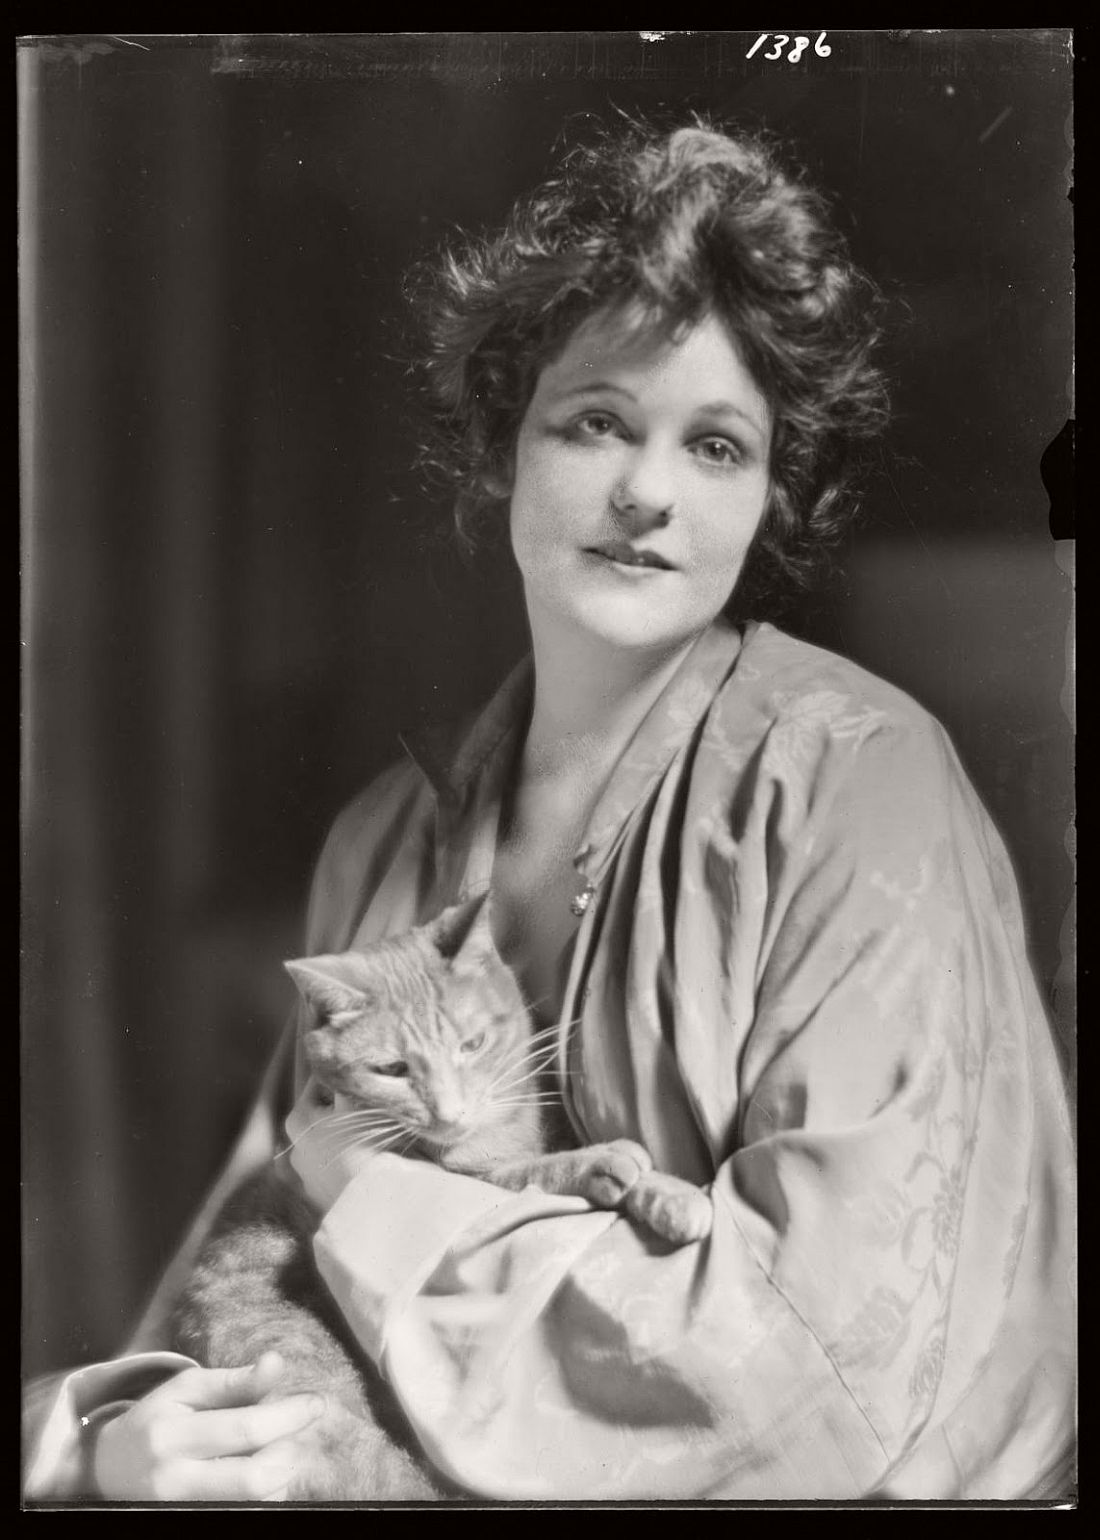 arnold-genthe-1910s-vintage-studio-portraits-of-girls-with-cat-01